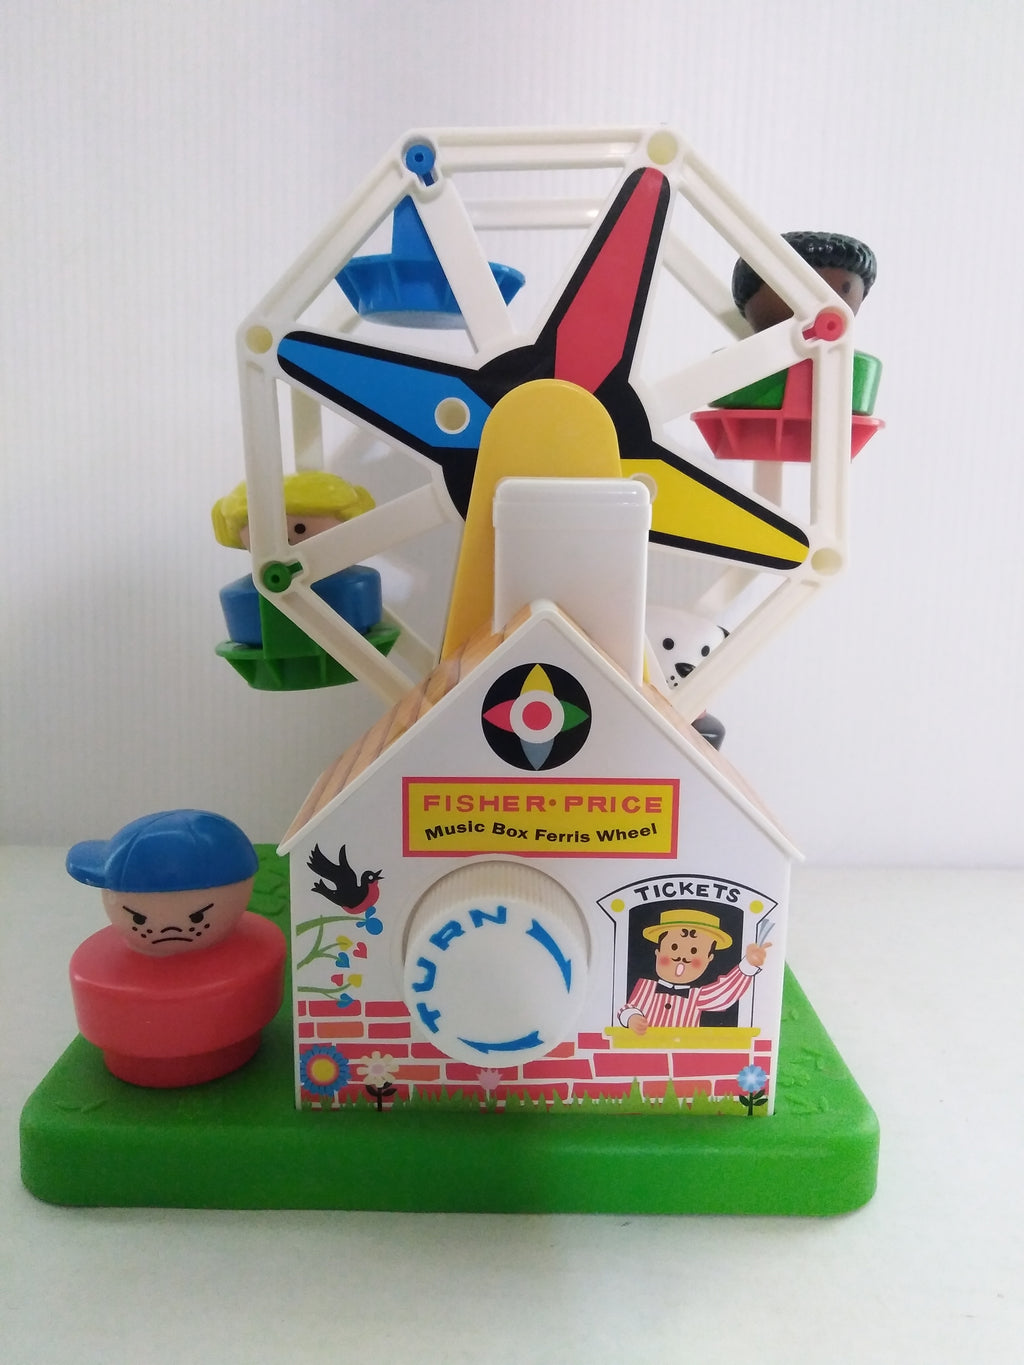 2015 Fisher Price Music Box Ferris Wheel-We Got Character